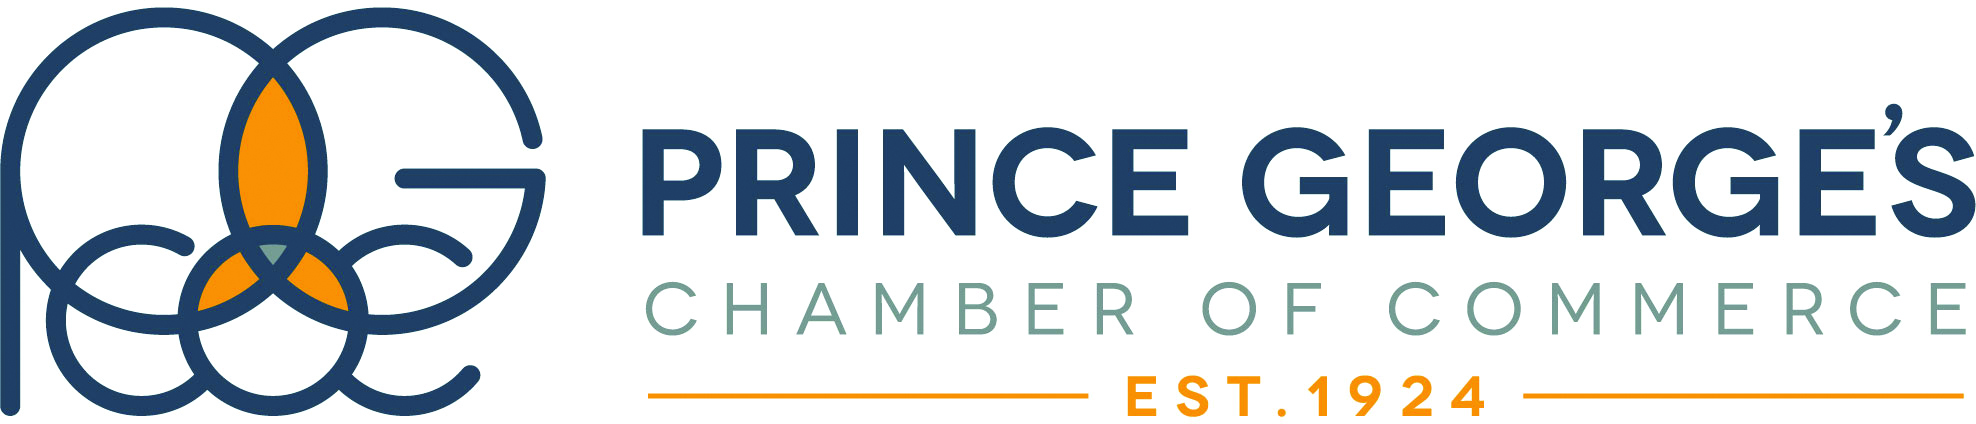 Prince George's Chamber if Commerce Est. 1924